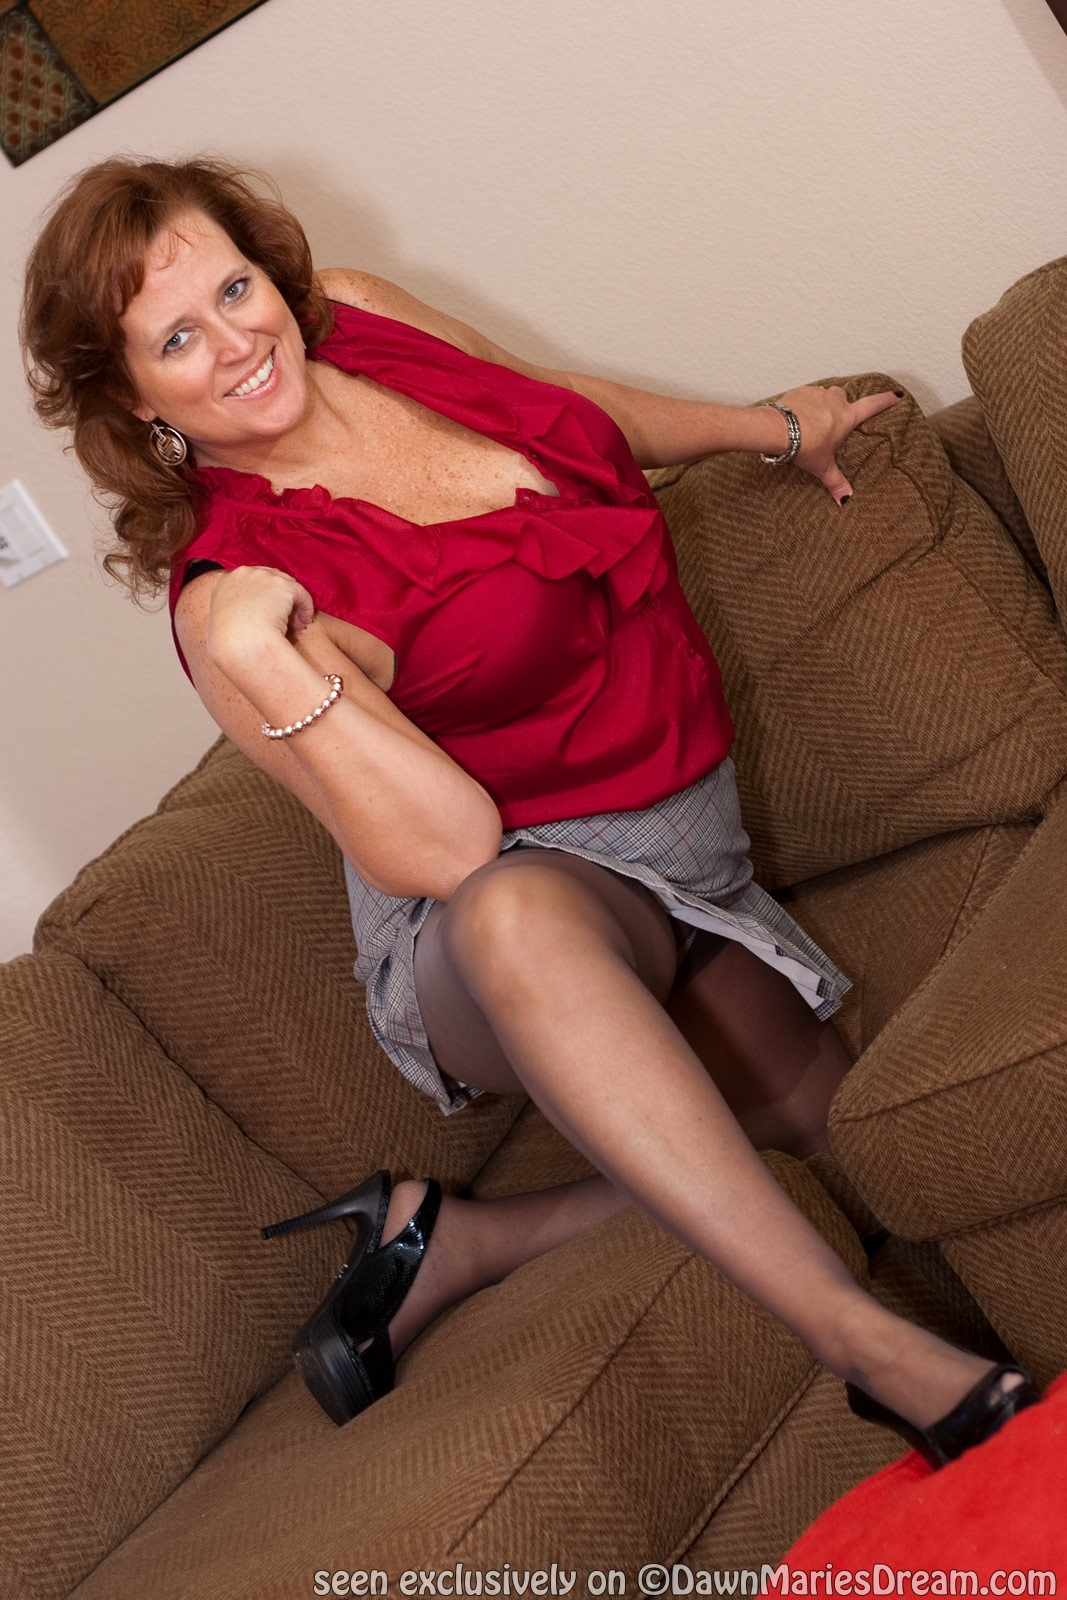 All dawn marie pantyhose unexpectedness!